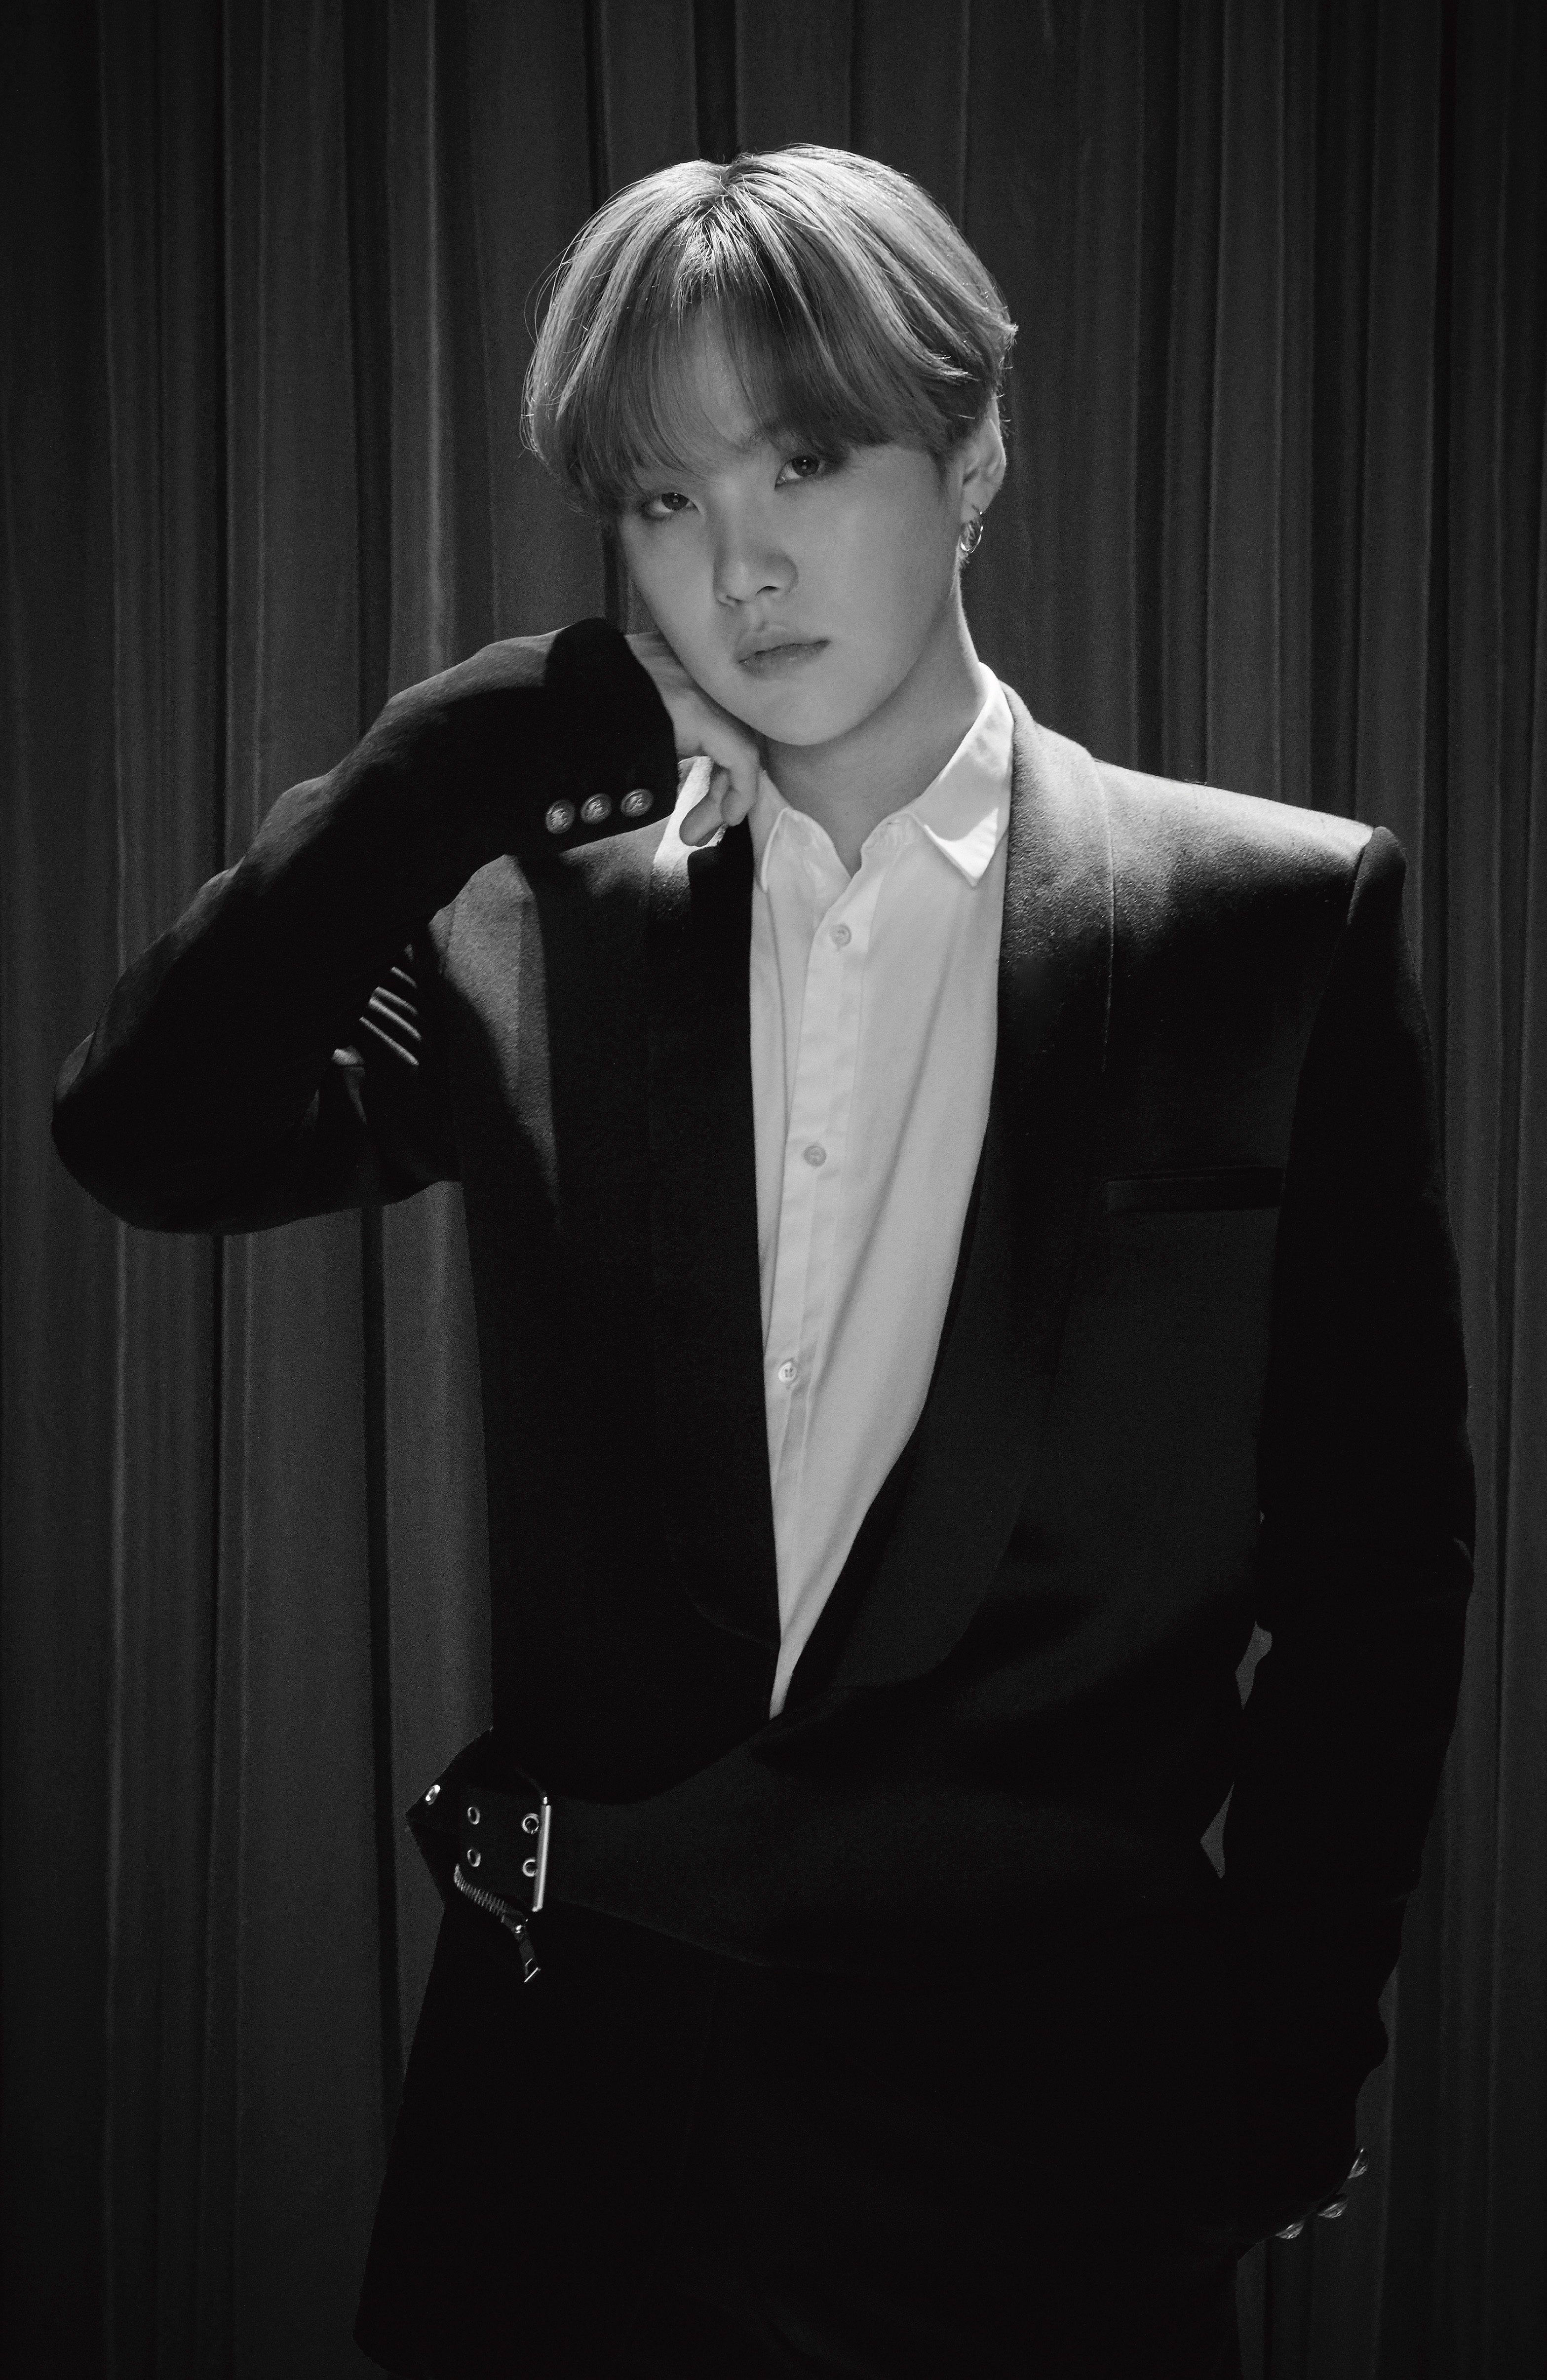 bts map of the soul 7 the journey concept SUGA